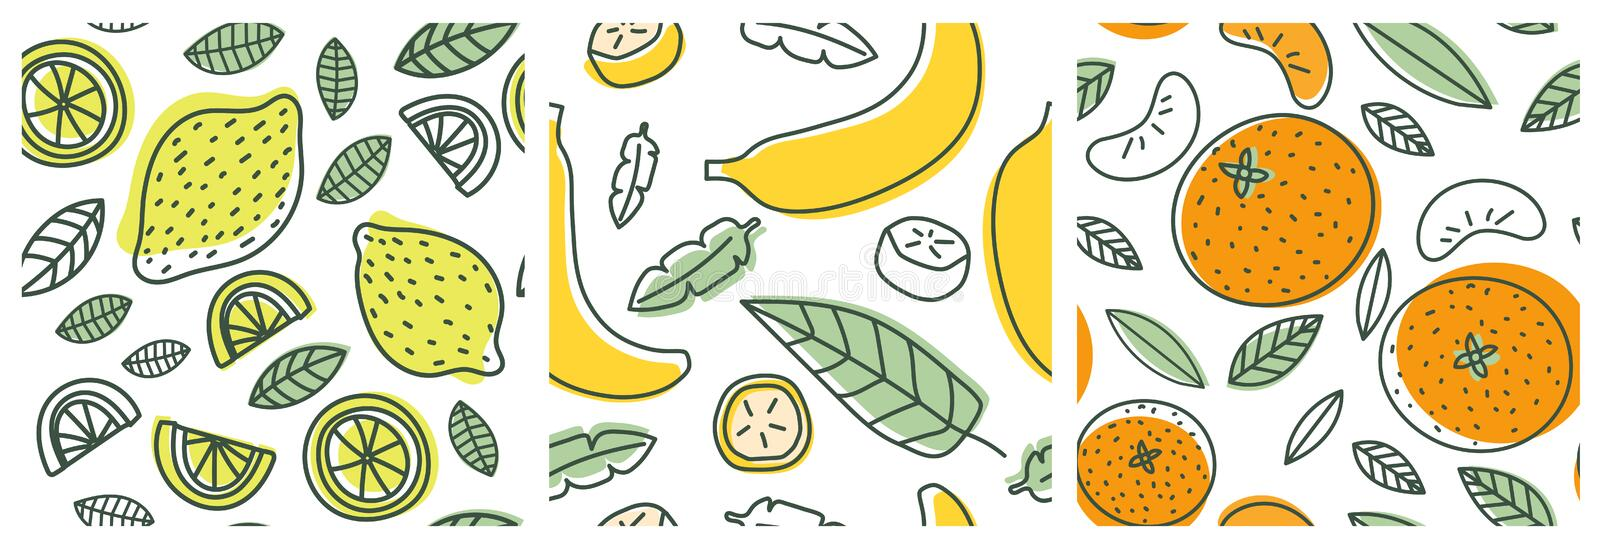 Lemon, banana and orange. Fruit seamless pattern set. Fashion design. Food print for clothes, linens or curtain. Hand drawn vector stock illustration